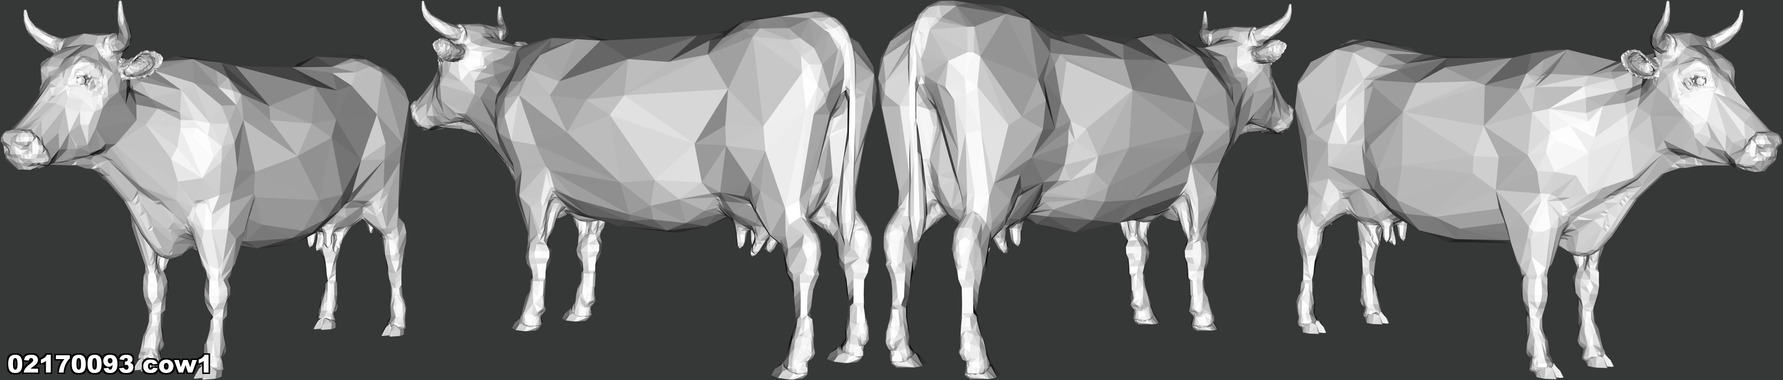 02170093 cow1.png